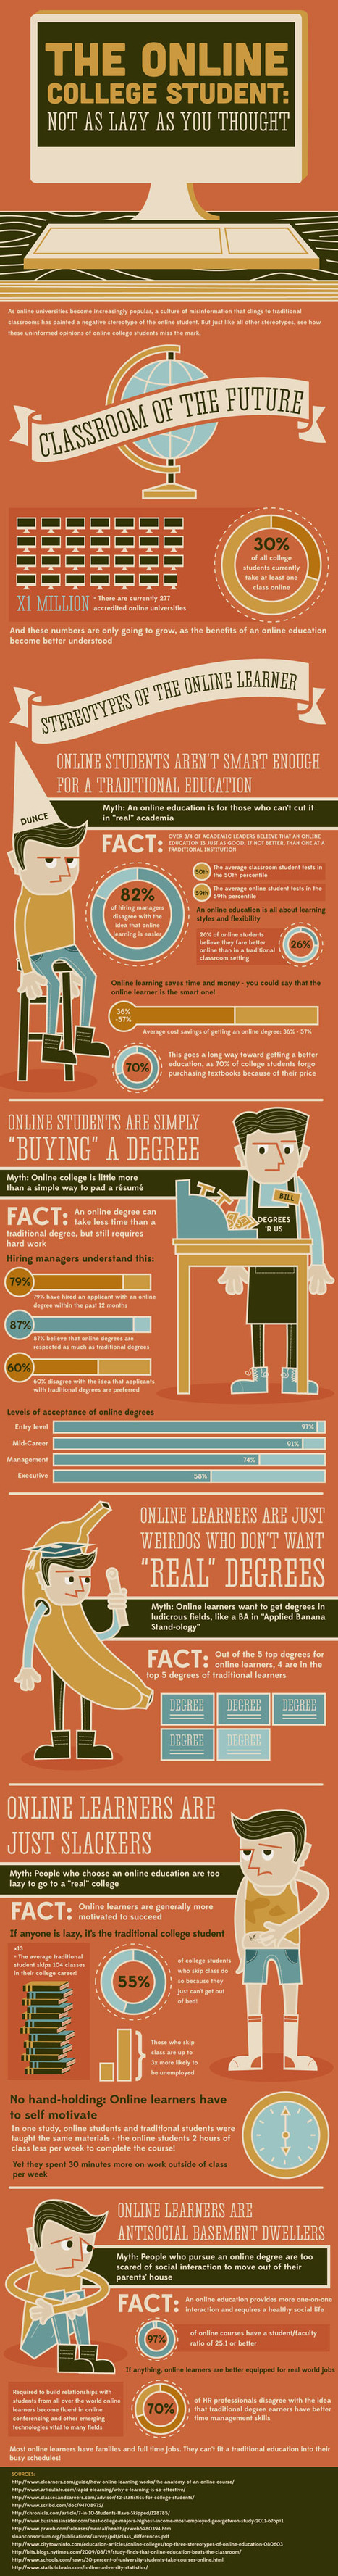 Do you have the wrong impression about online learning? [Infographic] | SocialMediaDesign | Scoop.it